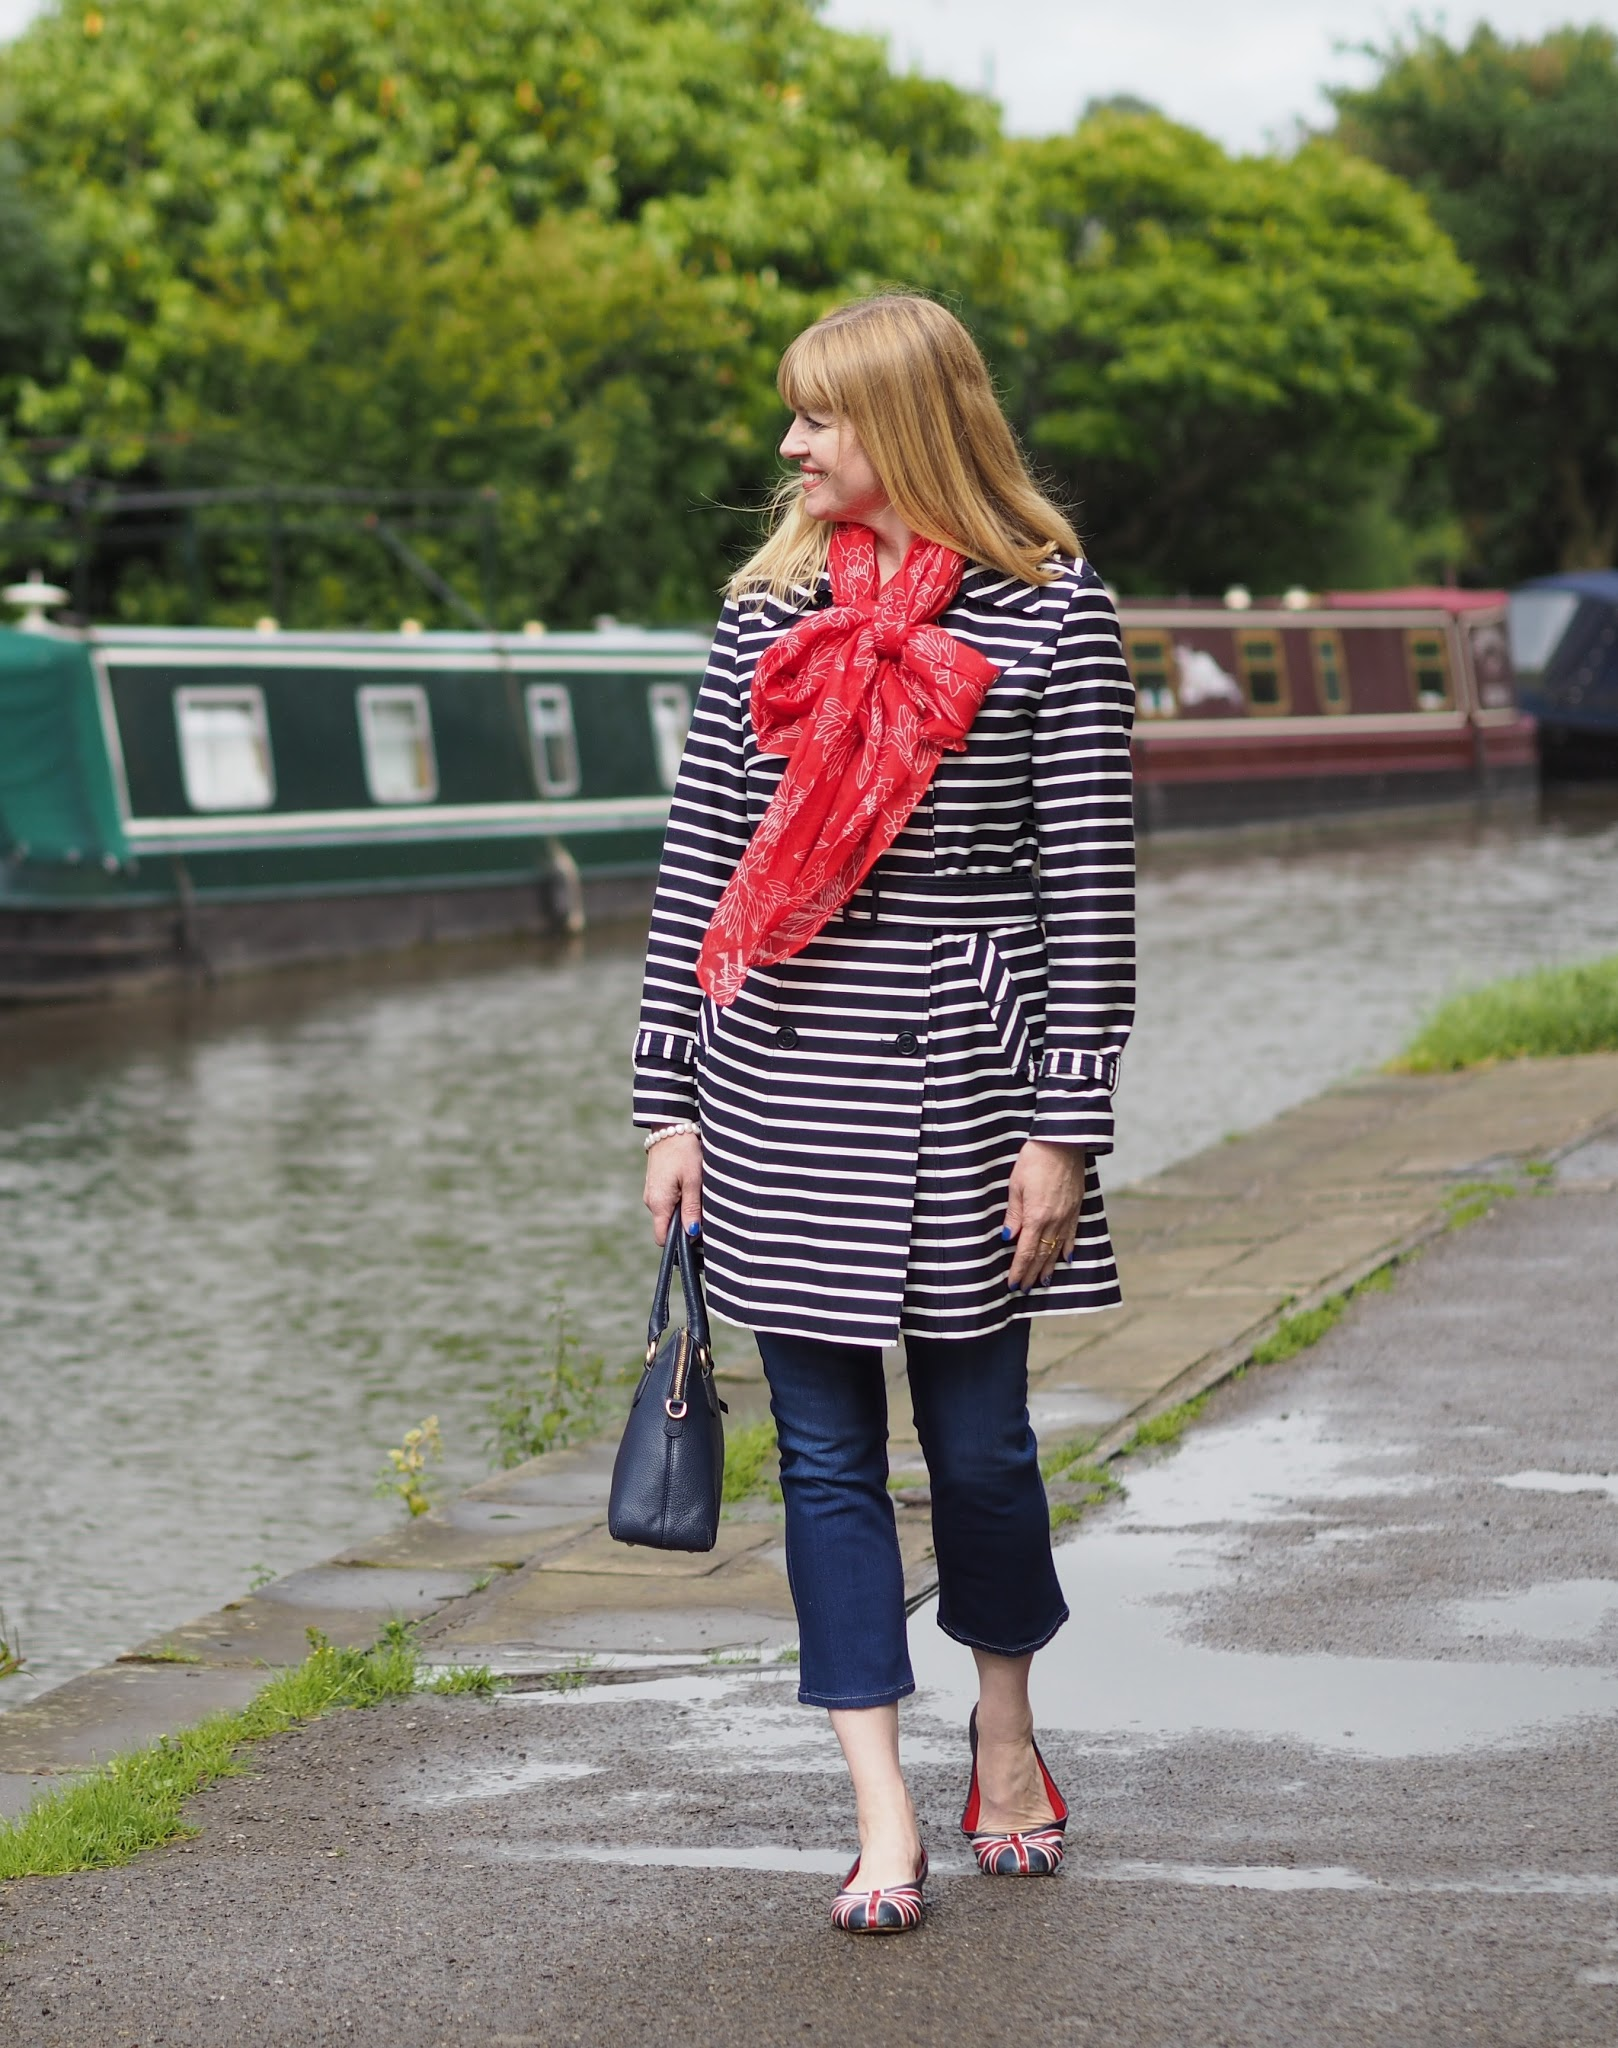 Navy striped trench coat, red floral scarf and British union jack ballerina shoes